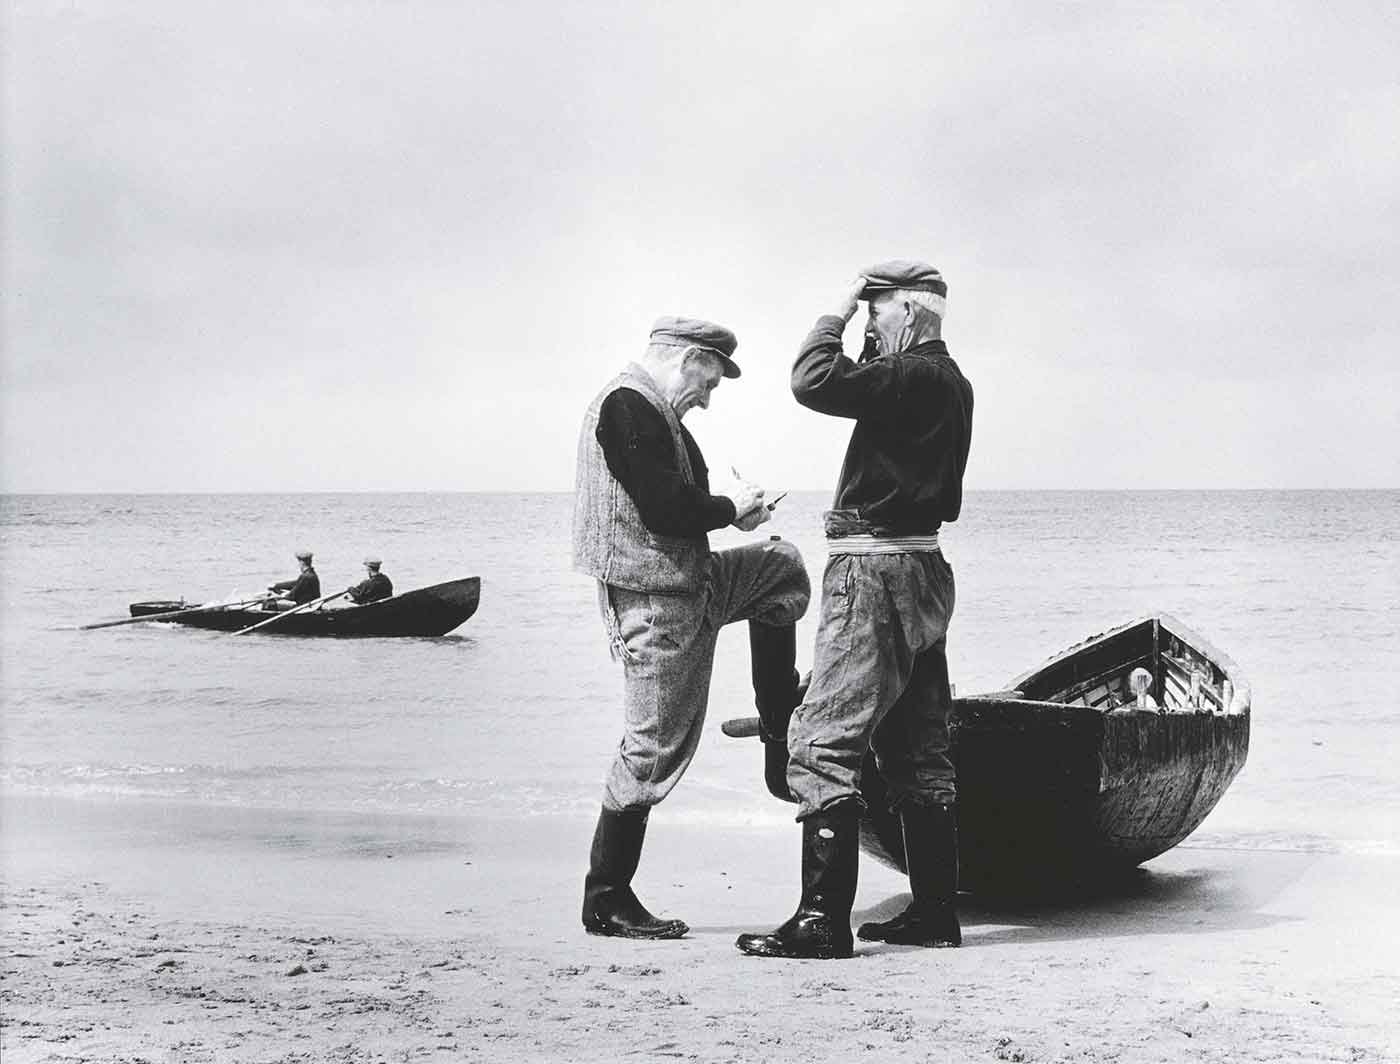 Black and white photo of two men standing beside a small boat on the shores of a sea with another boat containing two people rowing further out in the water.